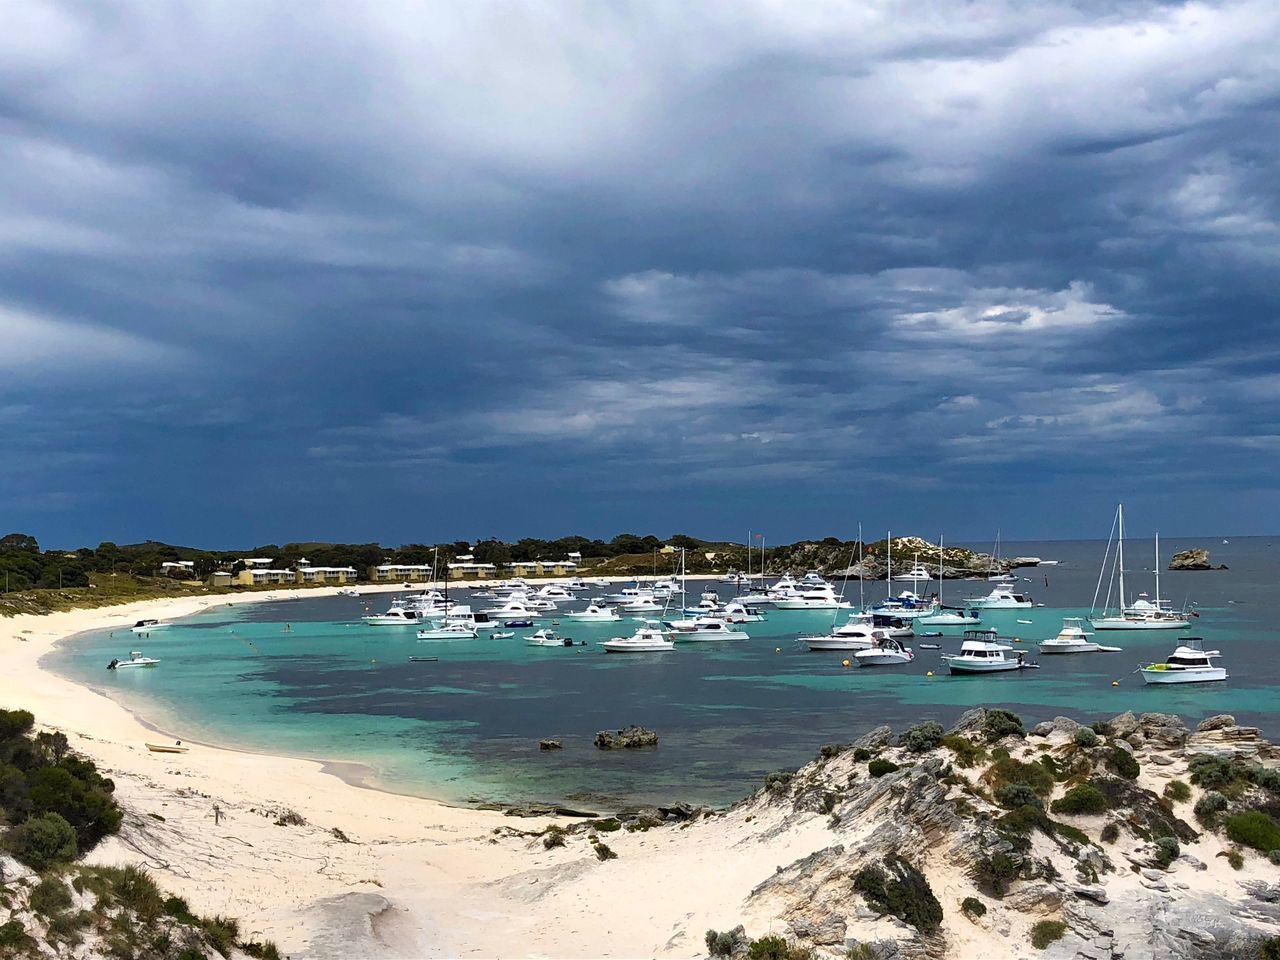 cloud - sky, nautical vessel, water, sky, sea, transportation, mode of transportation, nature, beauty in nature, scenics - nature, land, beach, day, no people, travel, tranquility, tranquil scene, outdoors, yacht, anchored, turquoise colored, sailboat